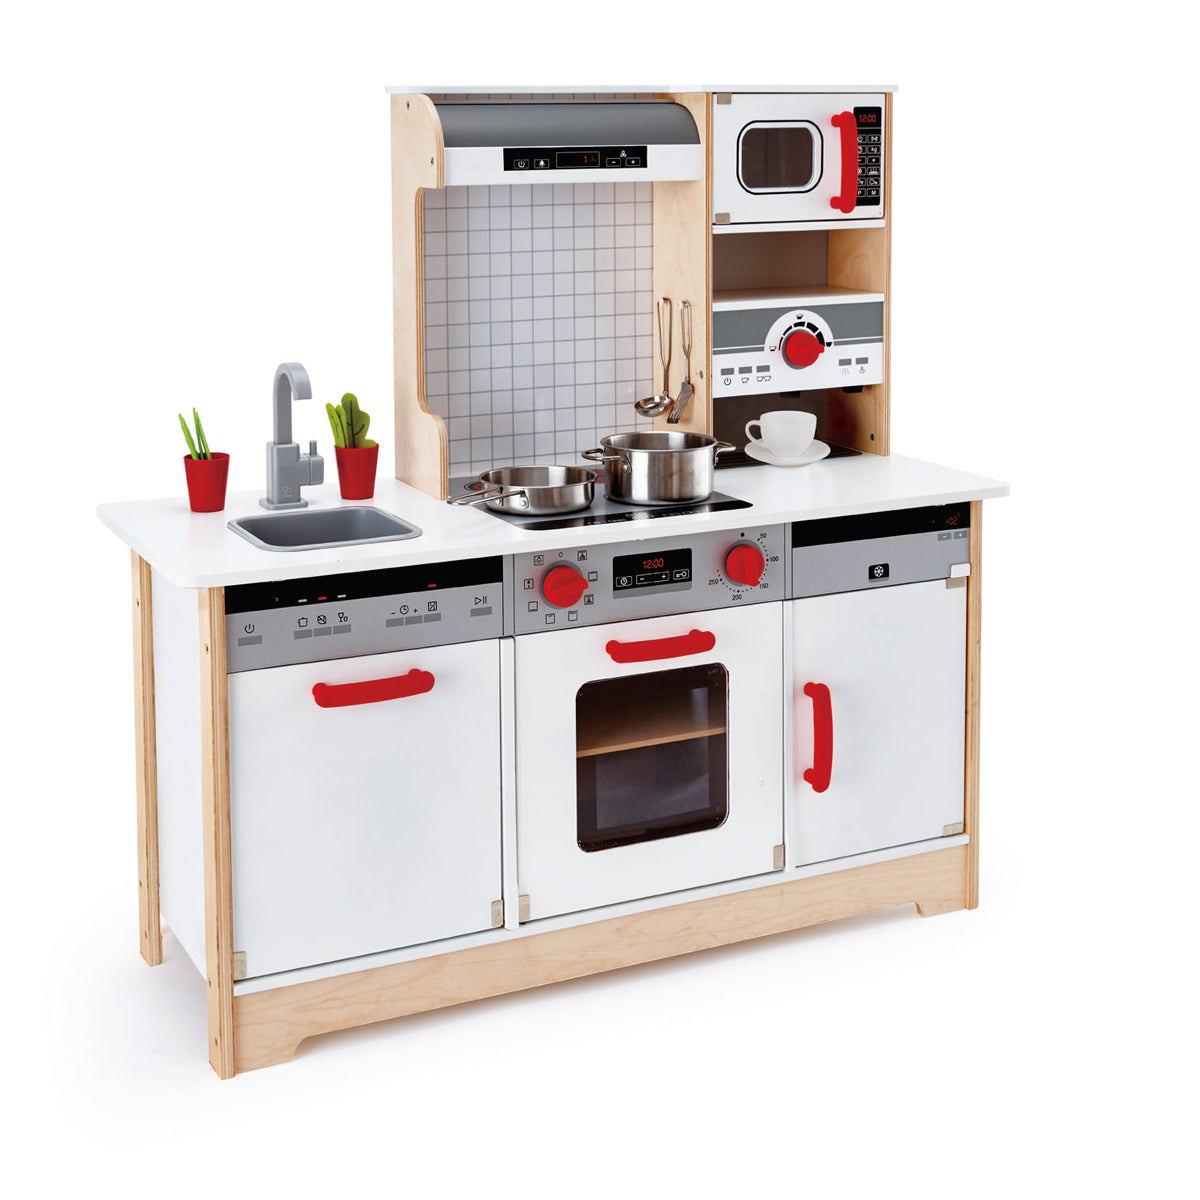 Medium image of hape all in one kitchen